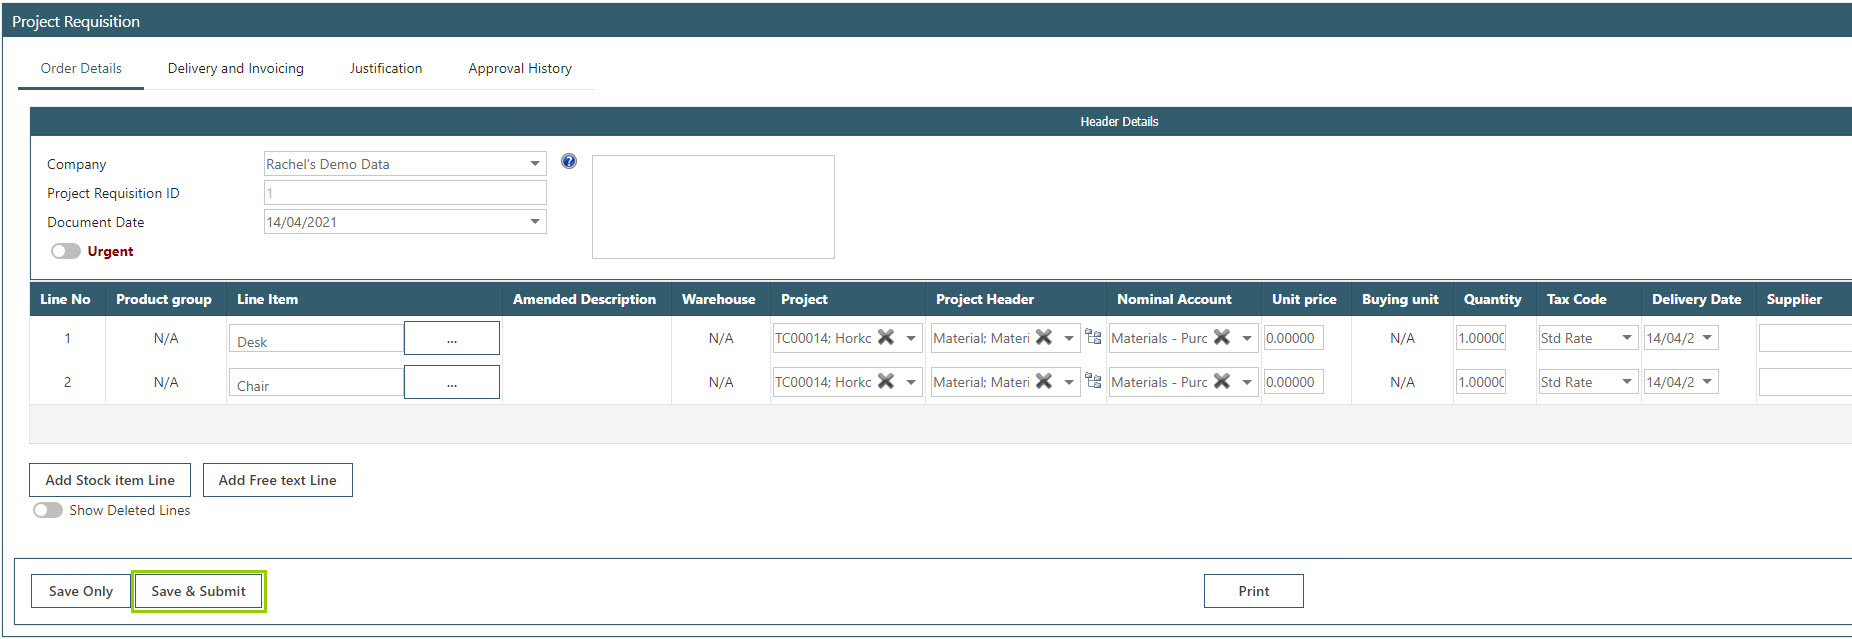 Sicon WAP Purchase Requisitions Help and User Guide - Requisition HUG Section 24.3 Image 8